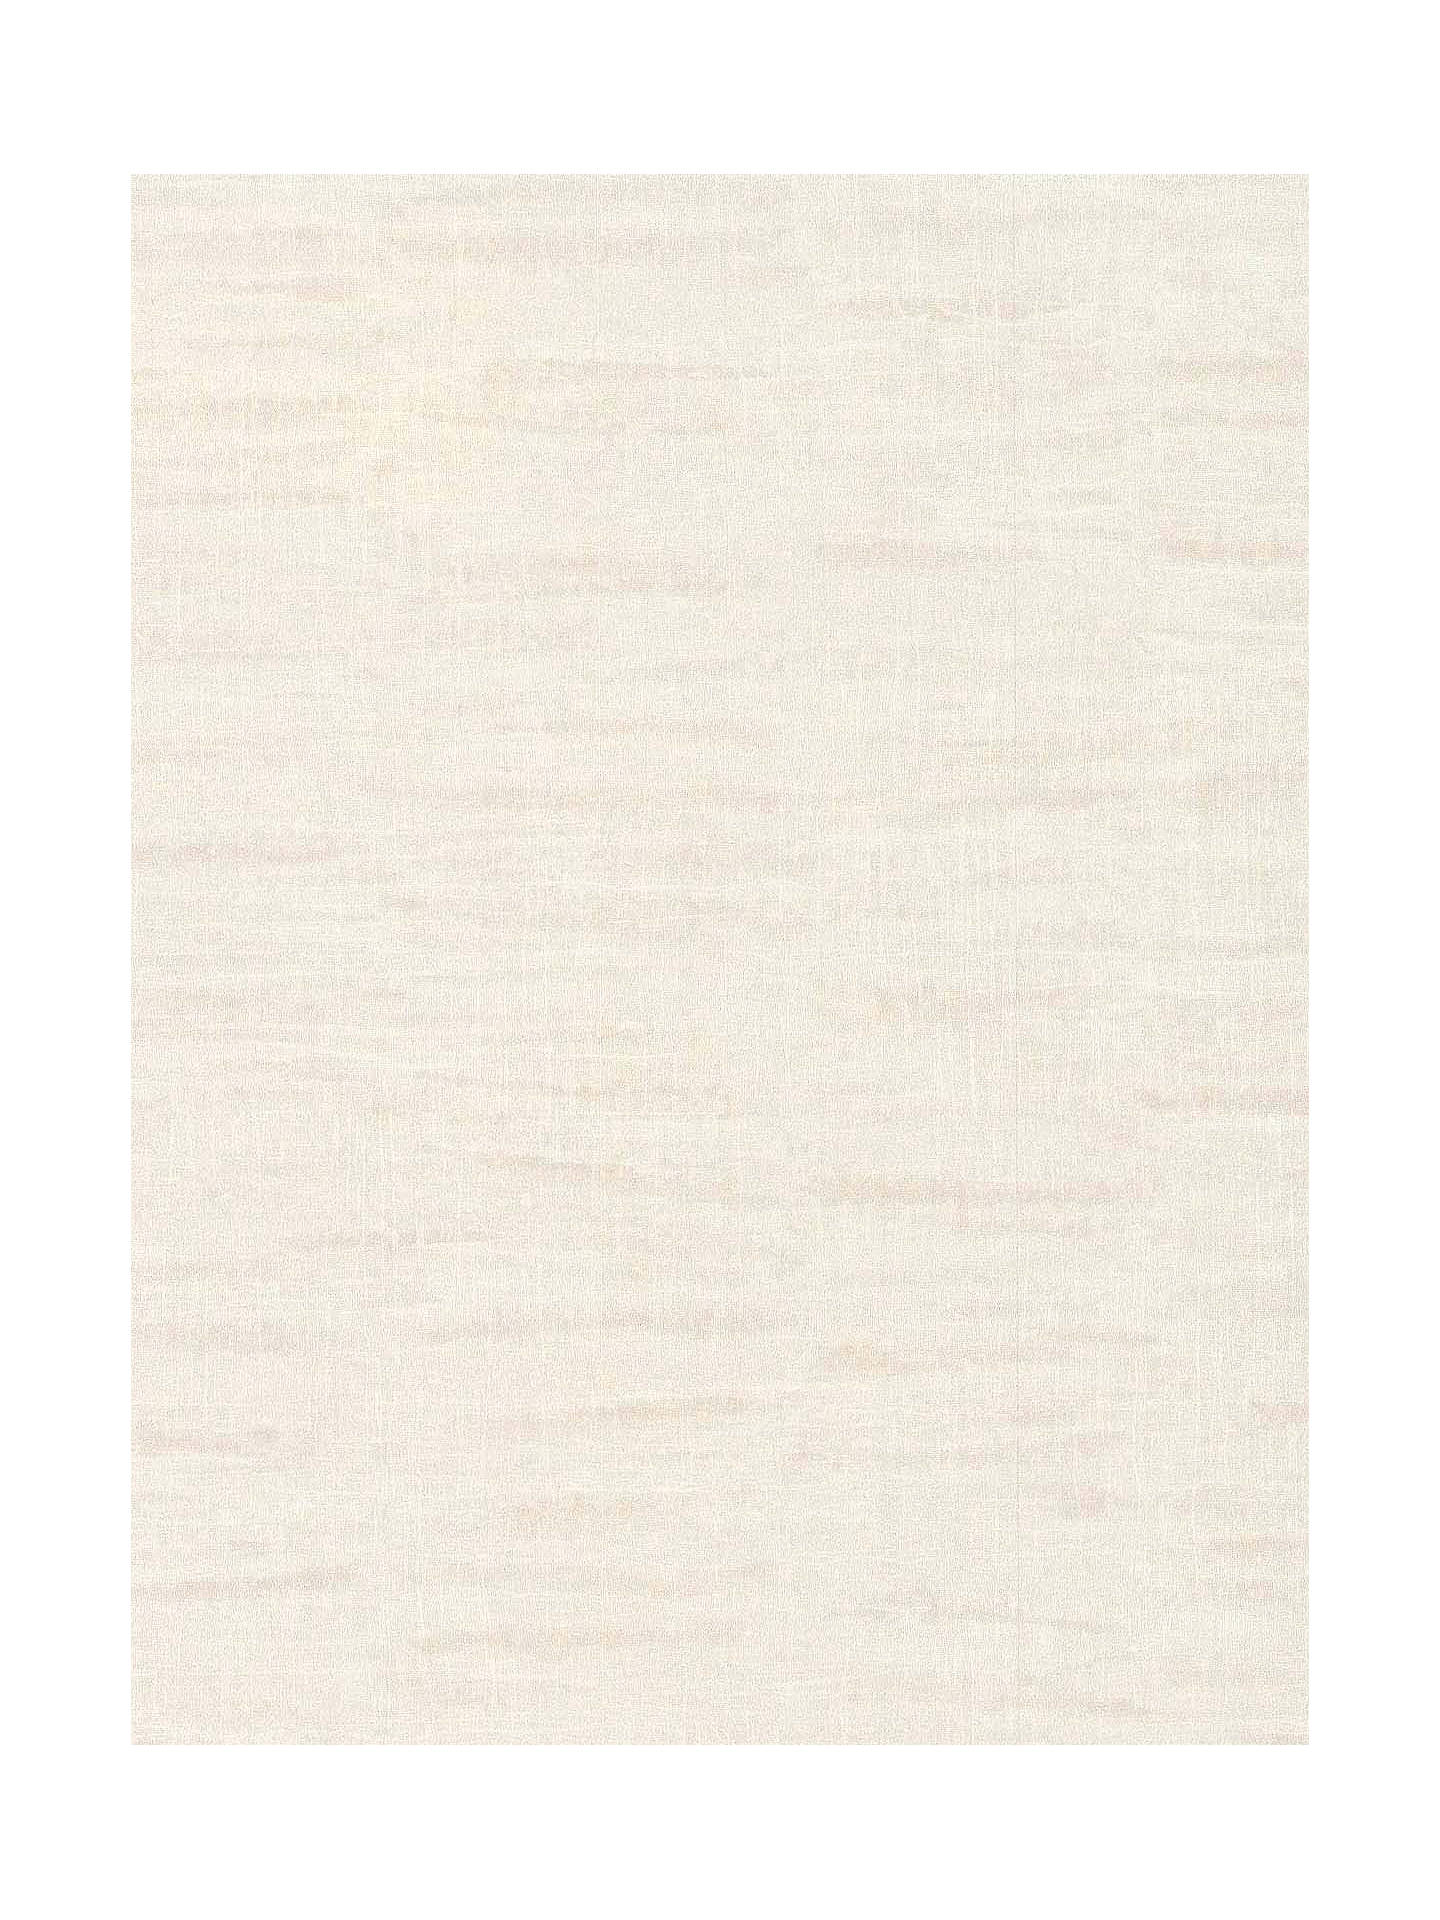 Buy Galerie Skaninavia Linen Wallpaper, Cream 51144307 Online at johnlewis.com